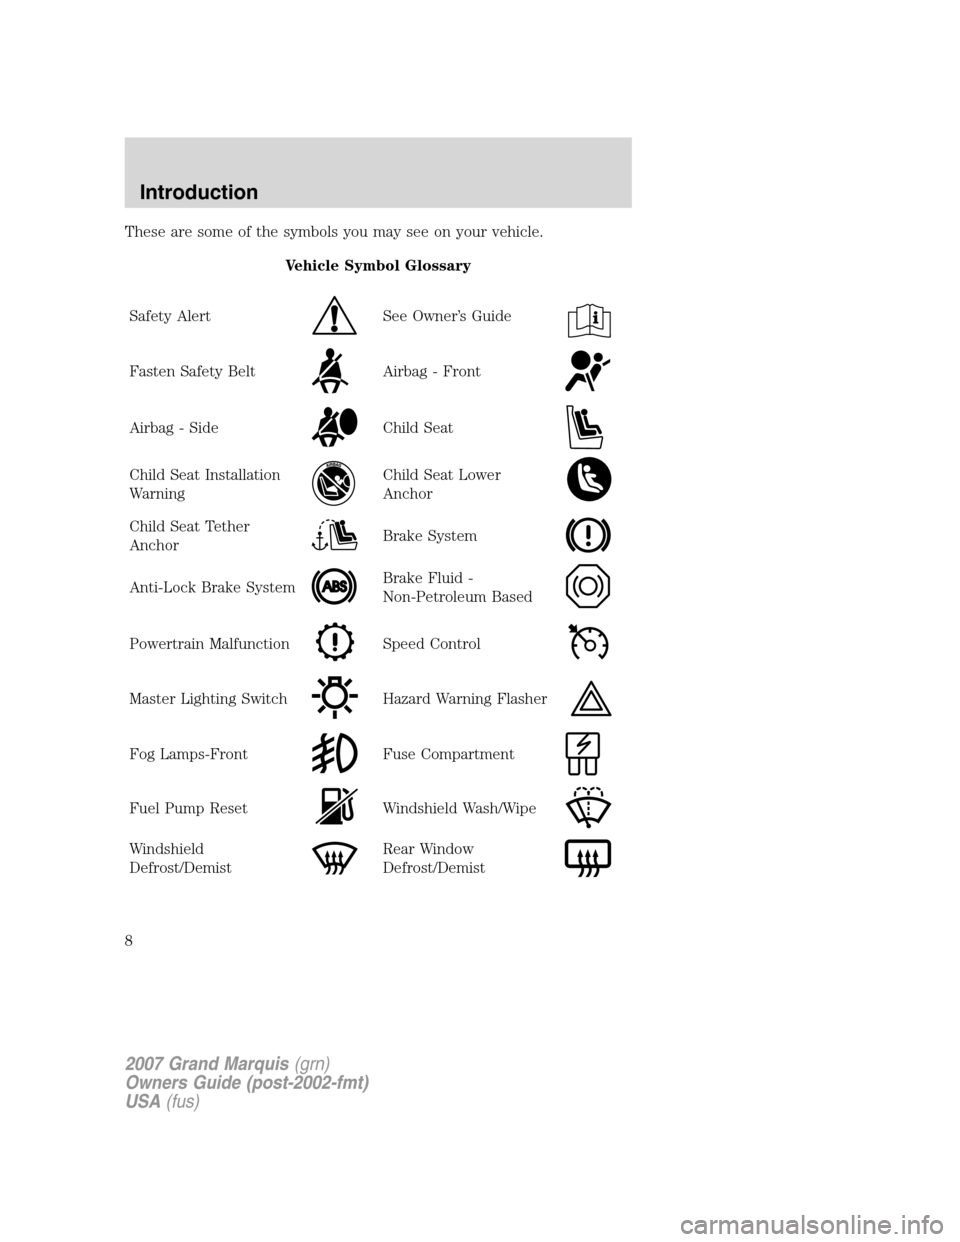 Mercury Grand Marquis 2007  Owners Manuals These are some of the symbols you may see on your vehicle. Vehicle Symbol Glossary Safety Alert See Owner's Guide Fasten Safety BeltAirbag - Front Airbag - SideChild Seat Child Seat Installation War